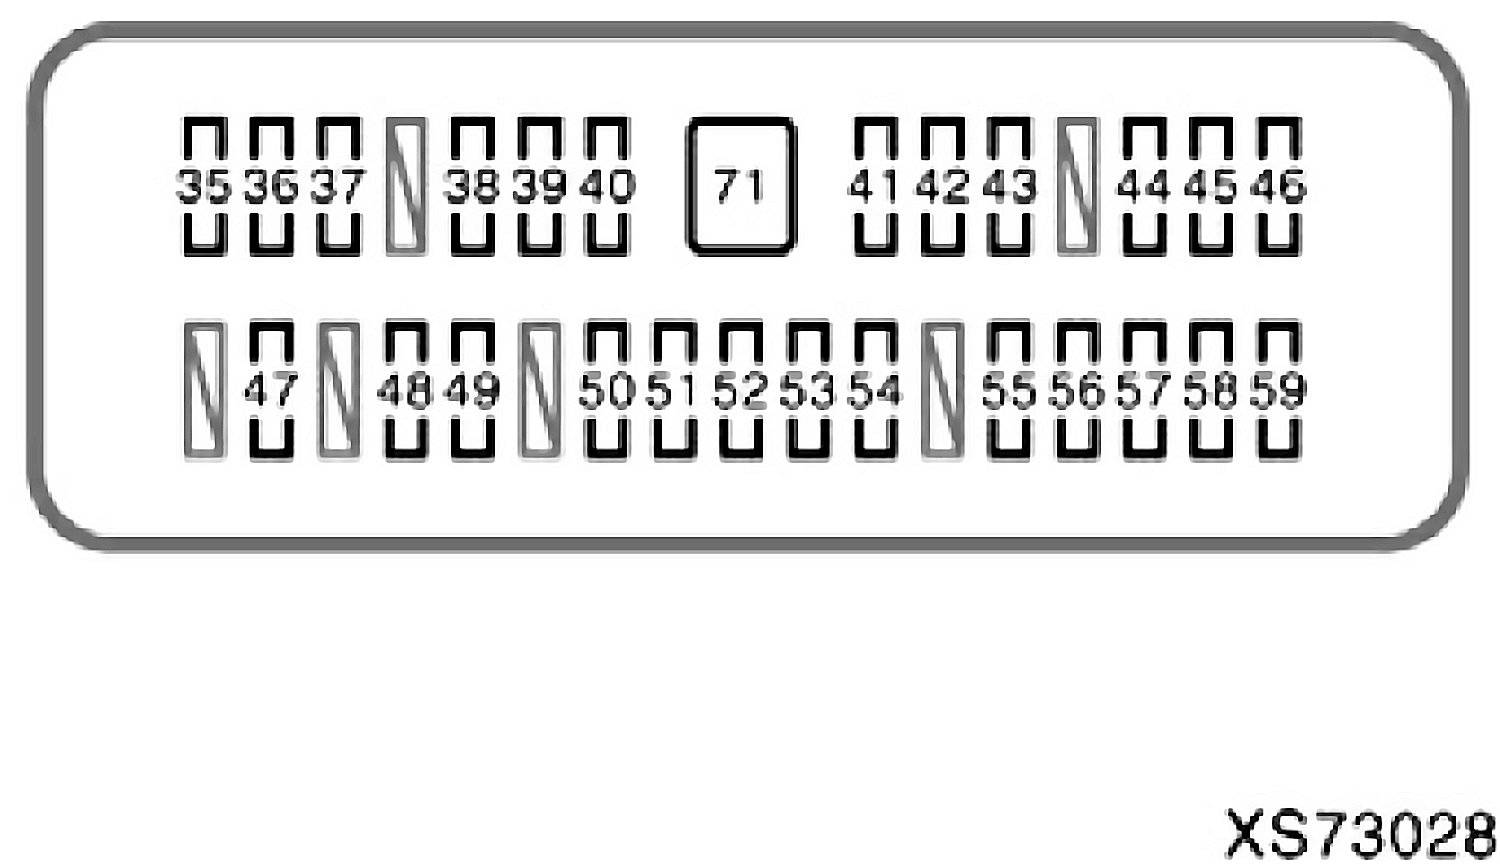 2008 Toyota Tundra Fuse Box Location